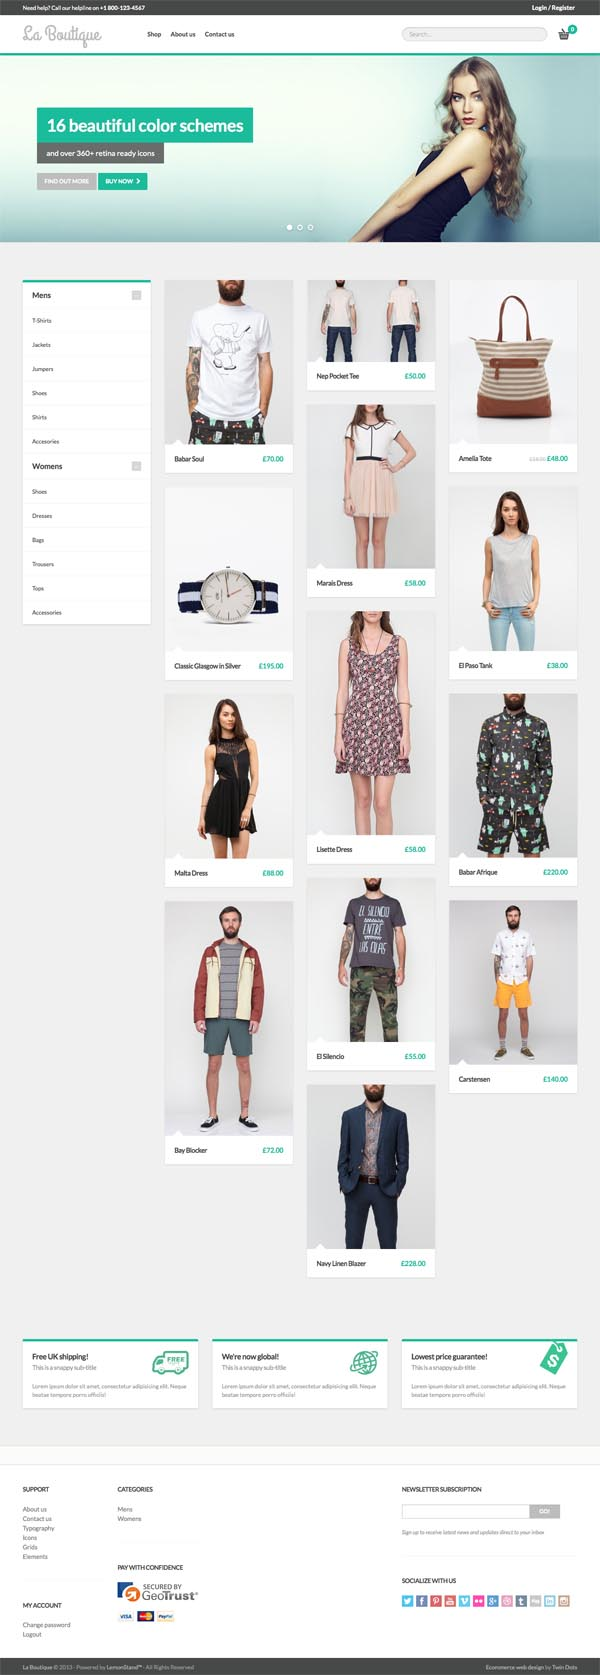 La Boutique - Multi-purpose WooCommerce Theme